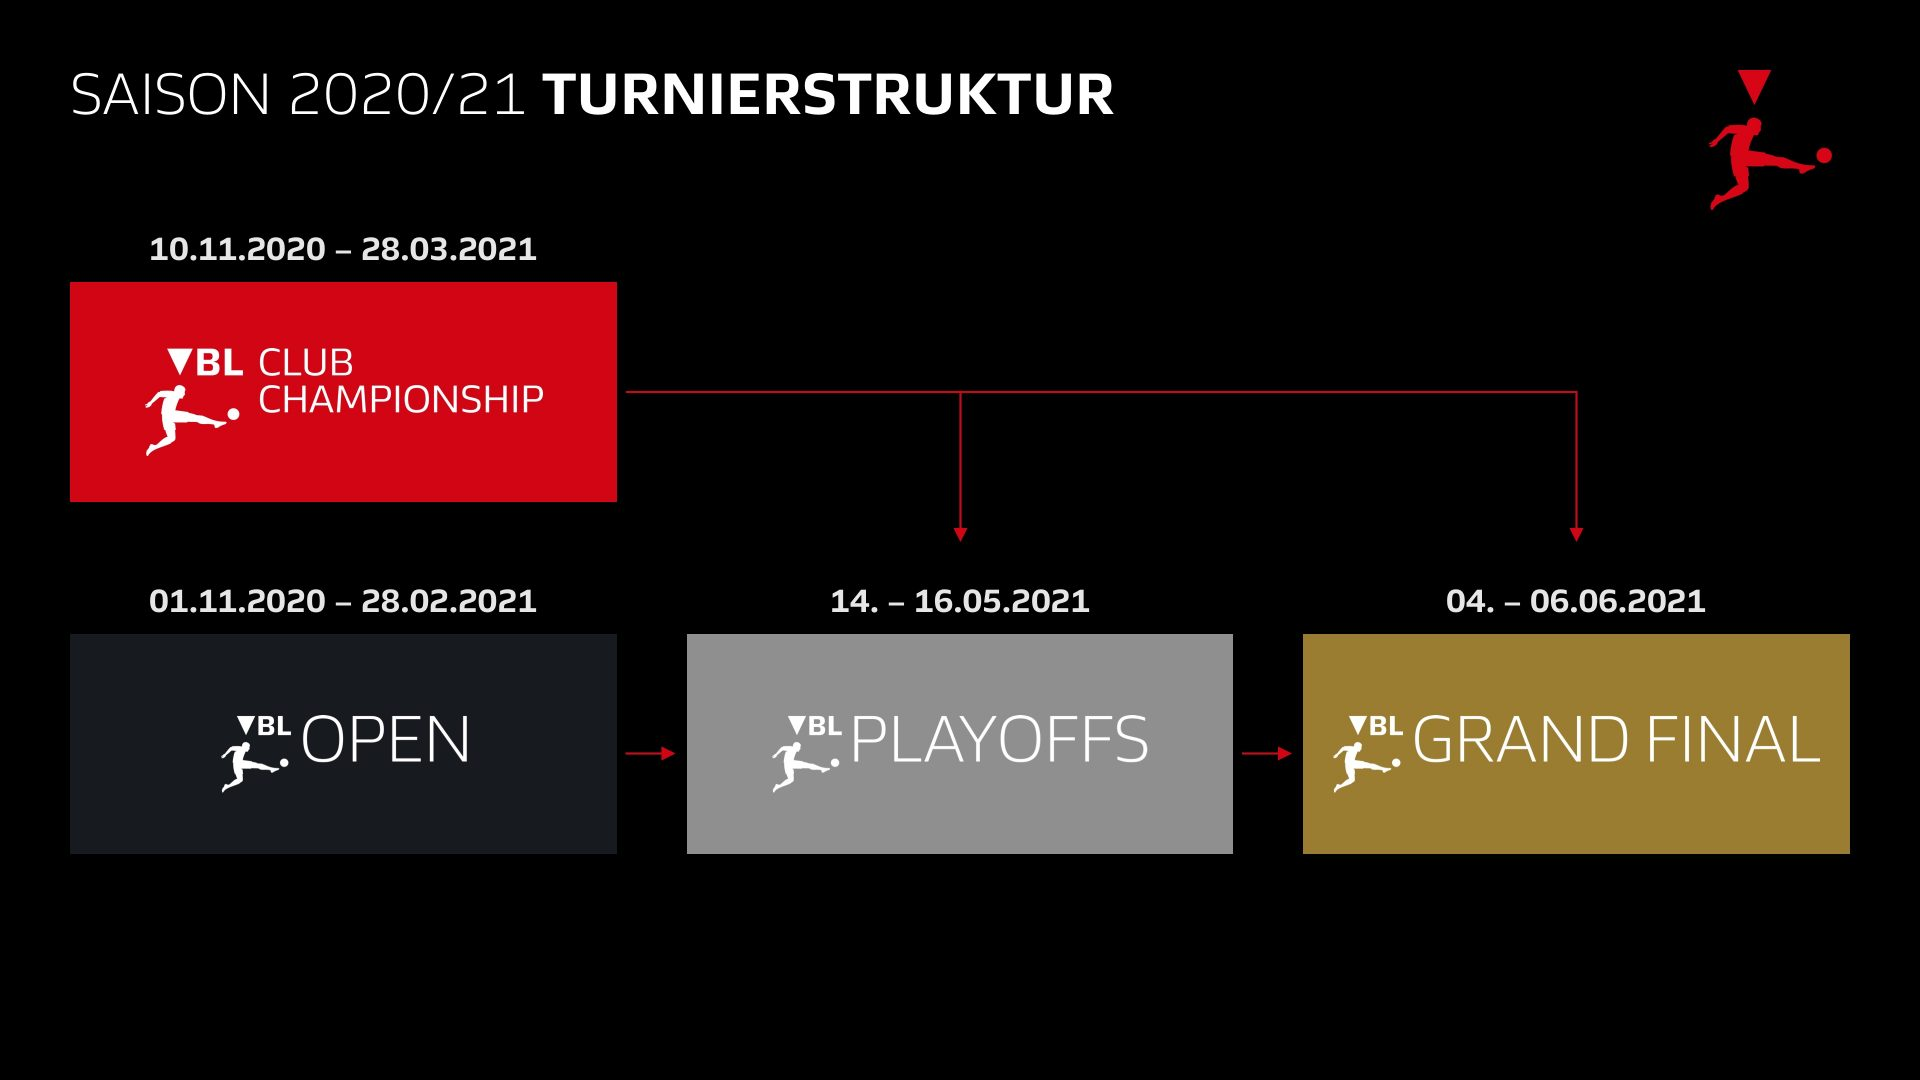 Virtual Bundesliga Club Championship - Turnierstruktur 2020/21